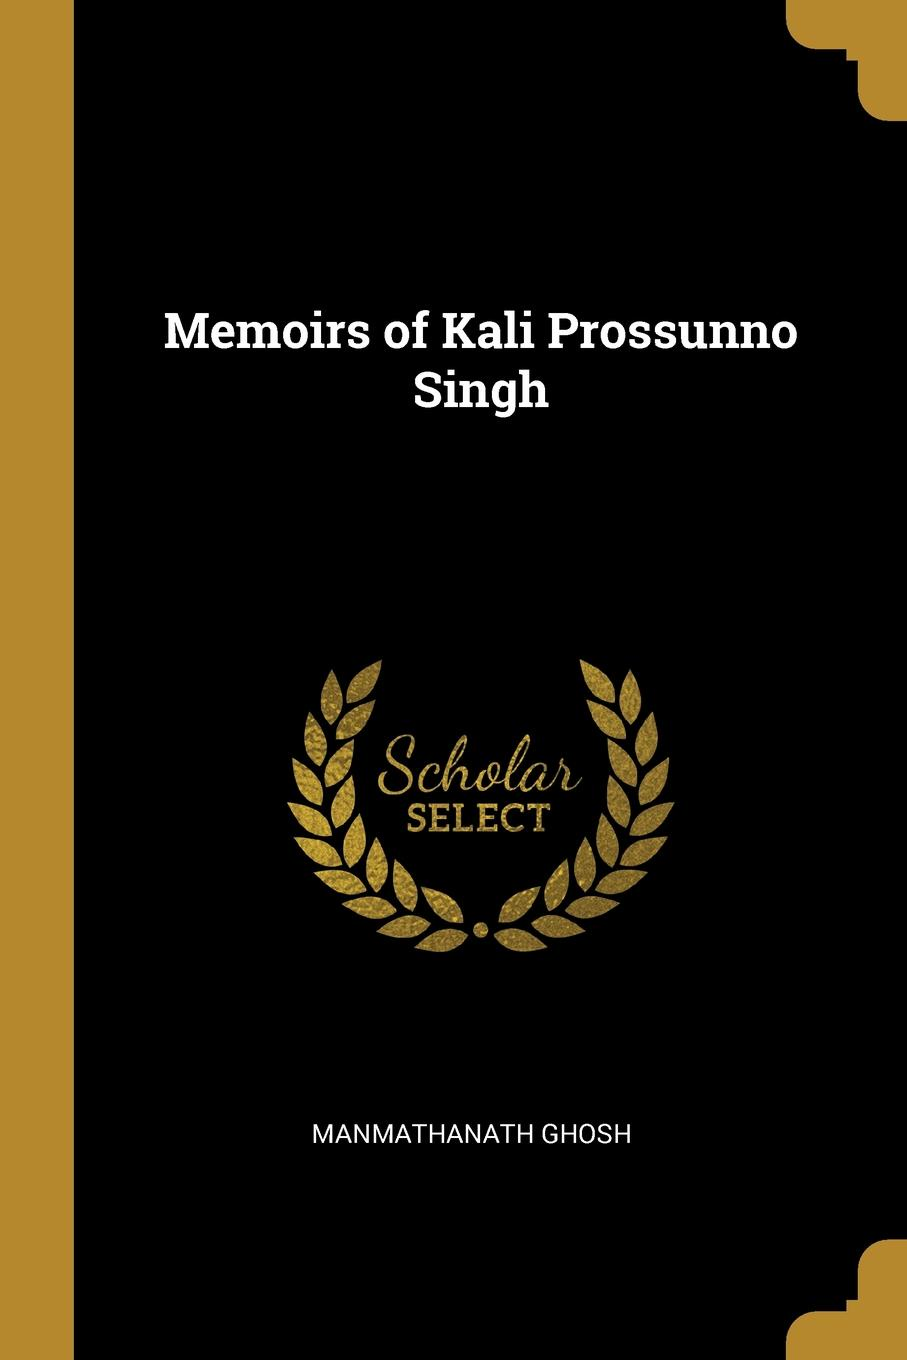 Manmathanath Ghosh. Memoirs of Kali Prossunno Singh